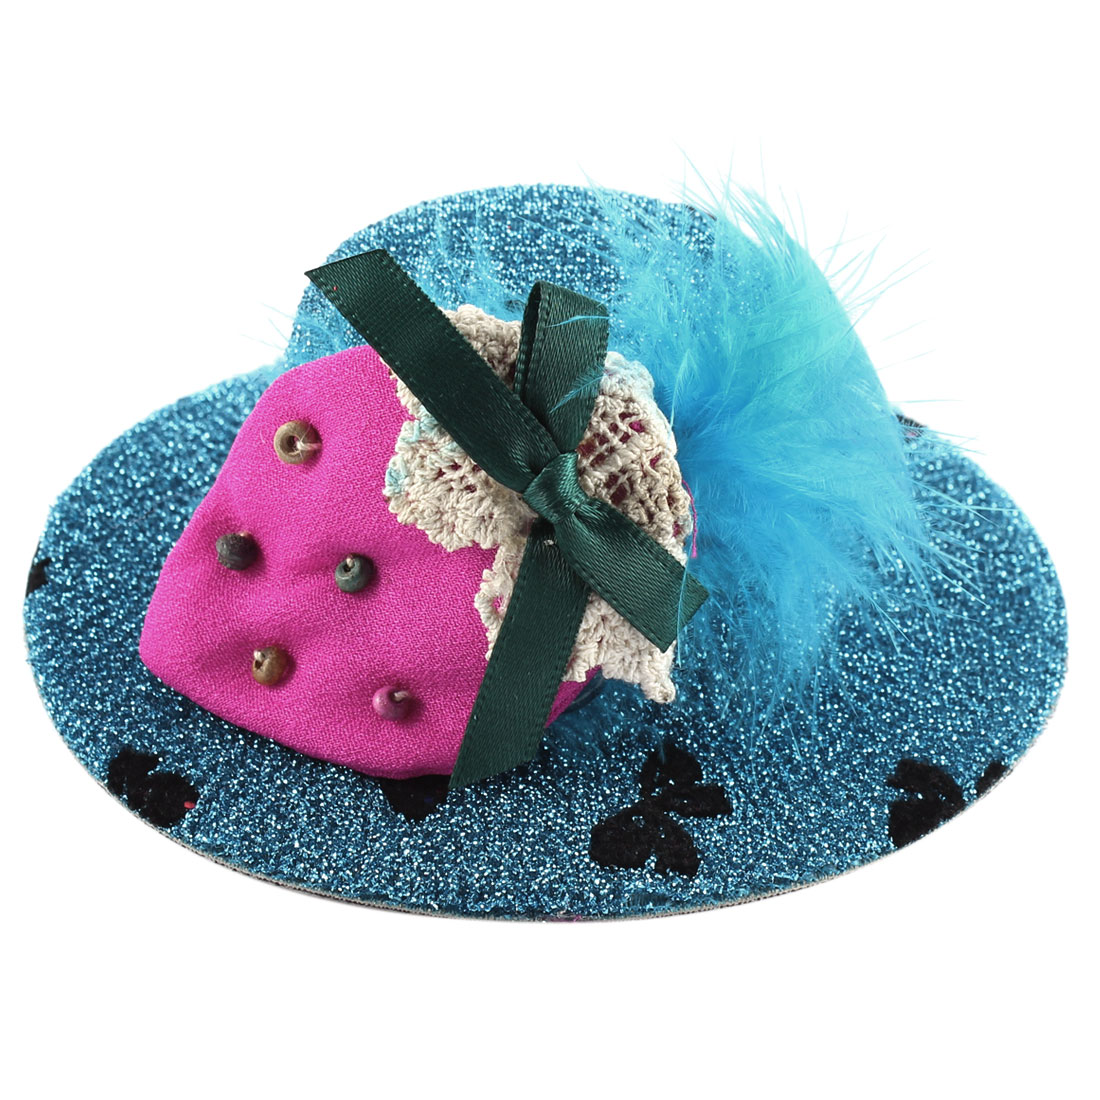 Lady Bowknot Print Fuchsia Strawberry Detail Glittery Tinsel Coated Top Hat Hairclip Blue